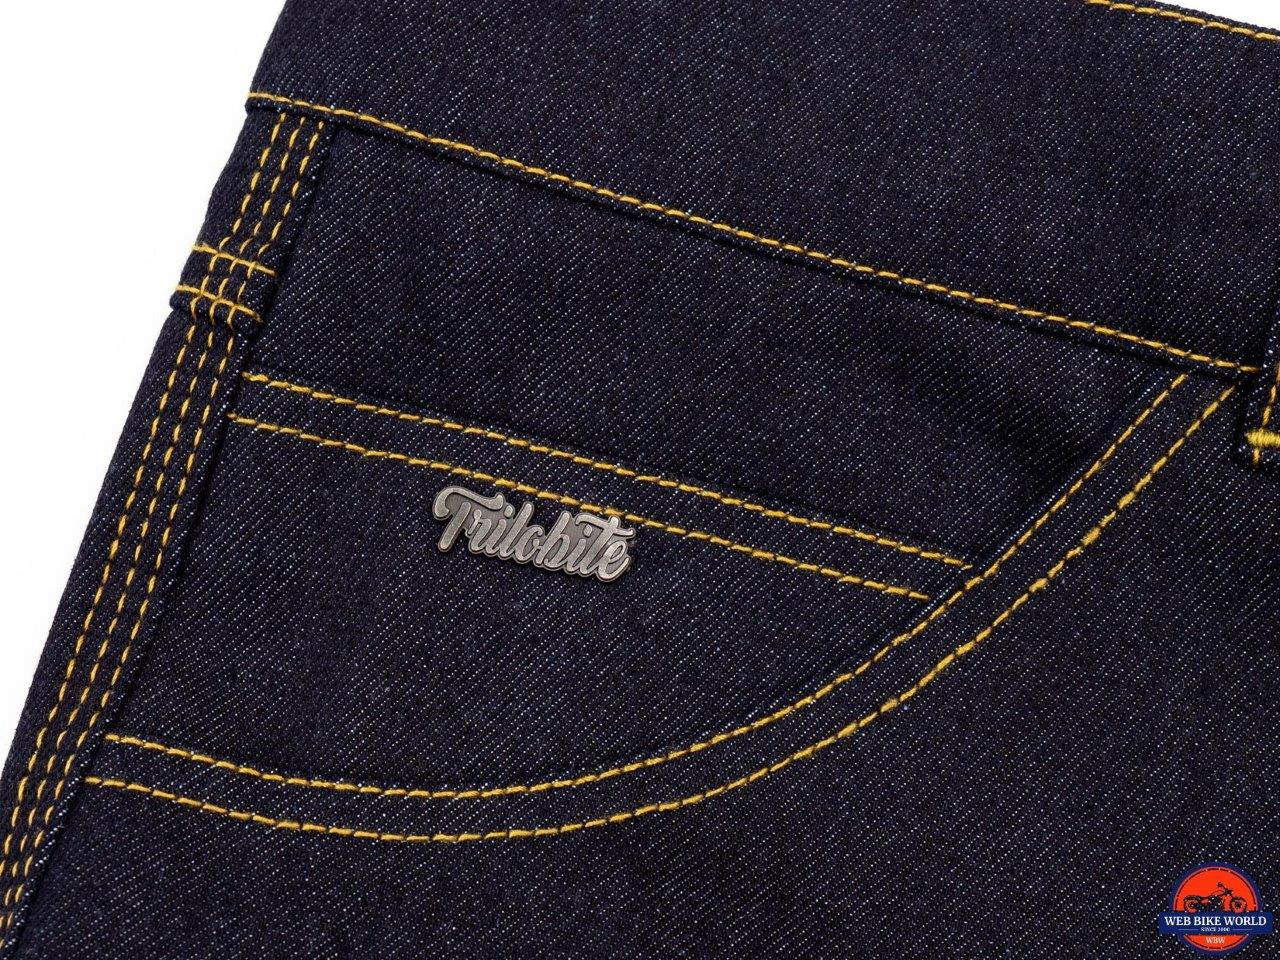 Trilobite Go-Up Jeans logo and stitching